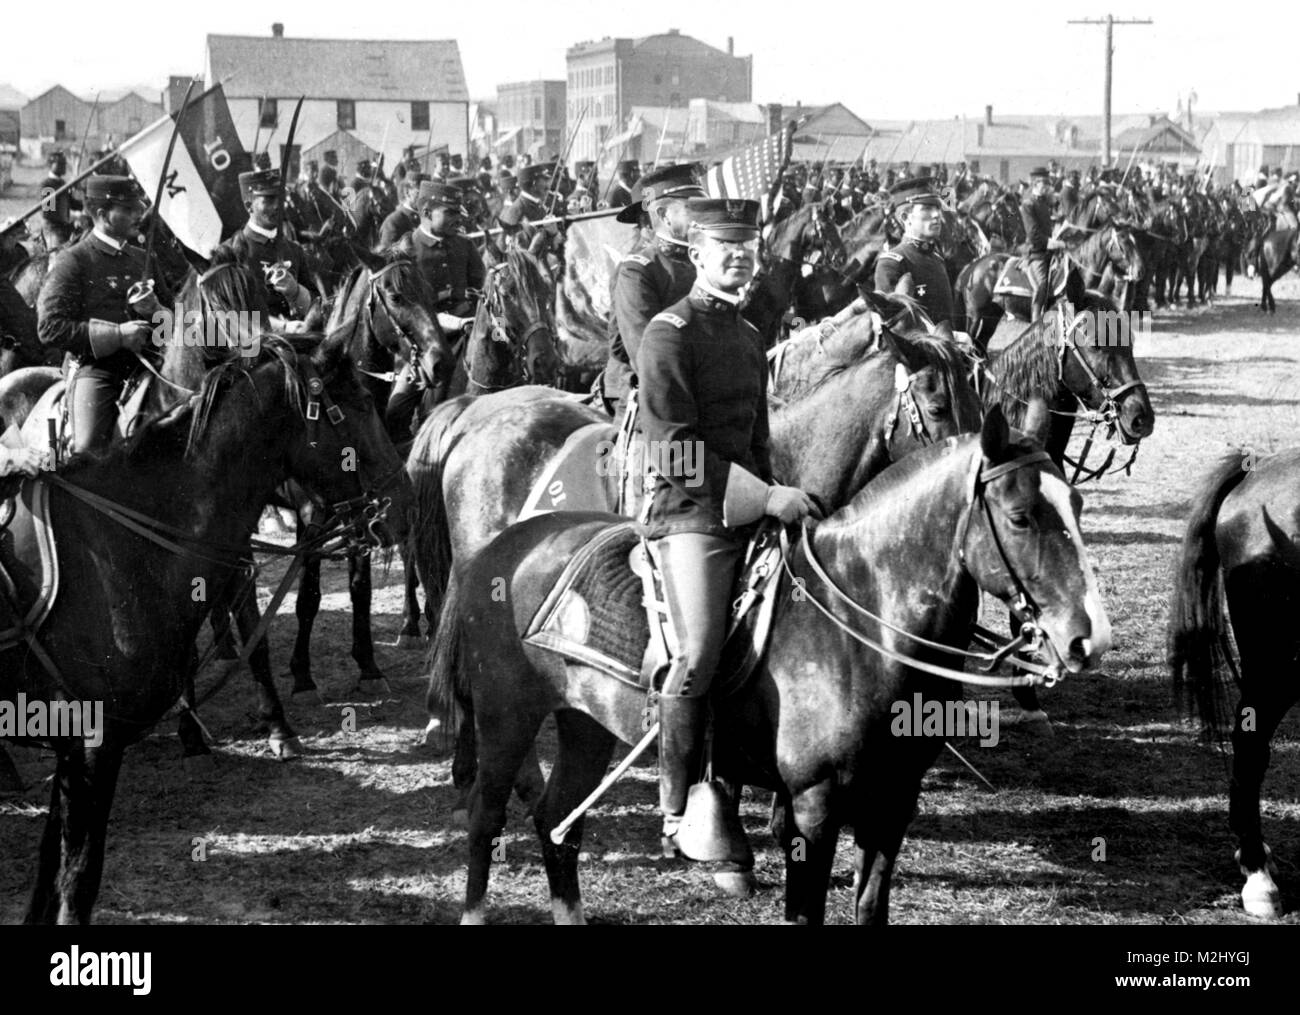 Buffalo Soldiers, 10th Cavalry Regiment, 1903 - Stock Image